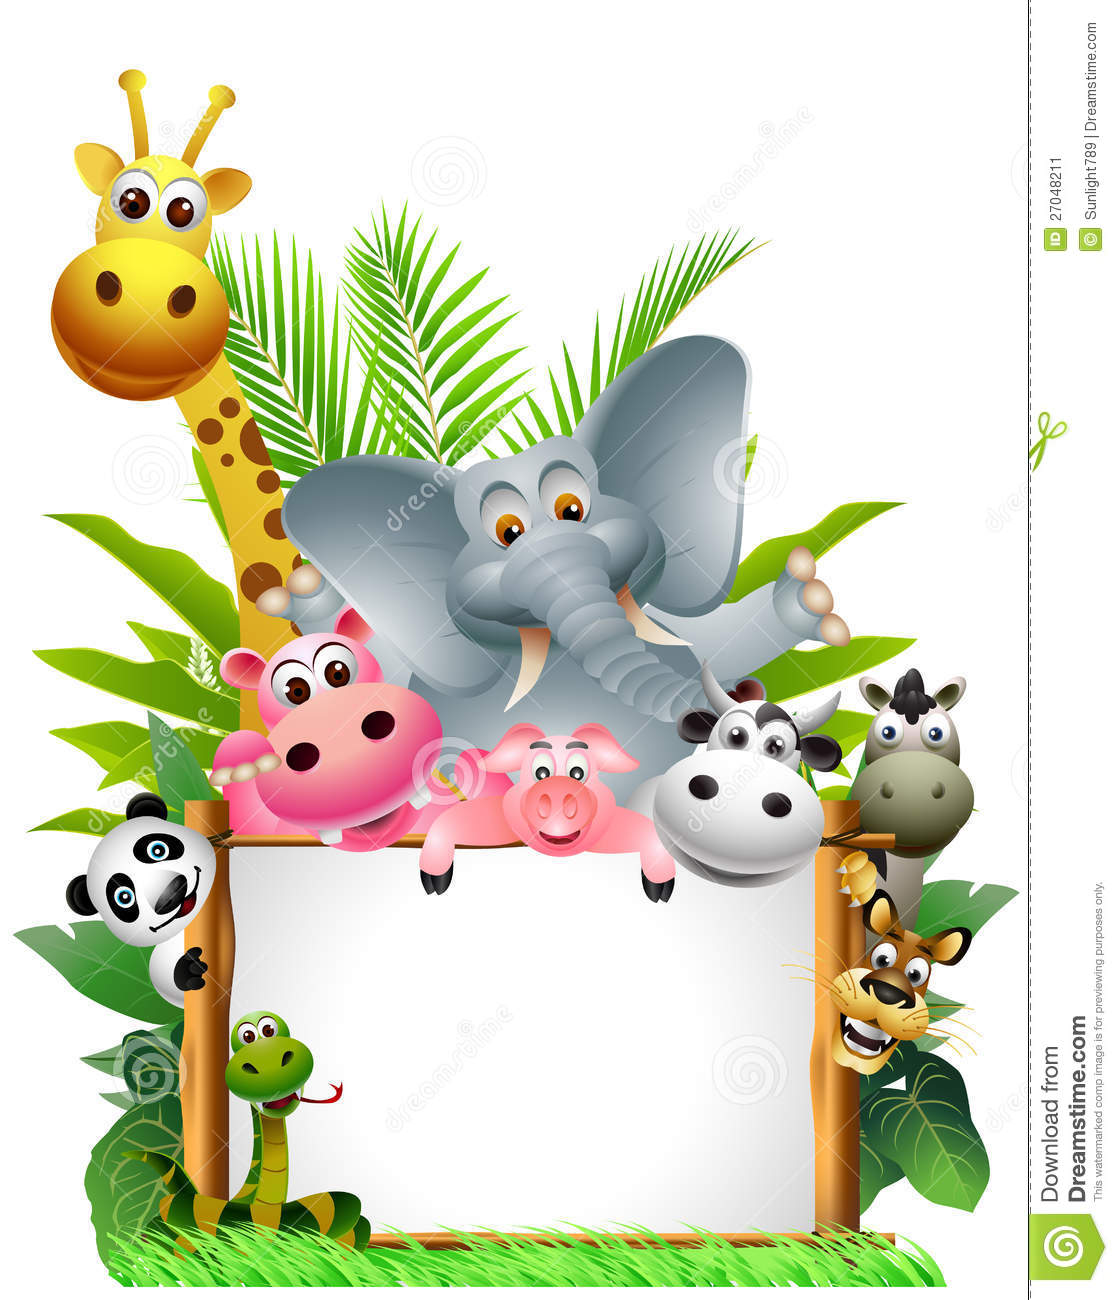 animals cartoon with blank sign stock image   image 27048211